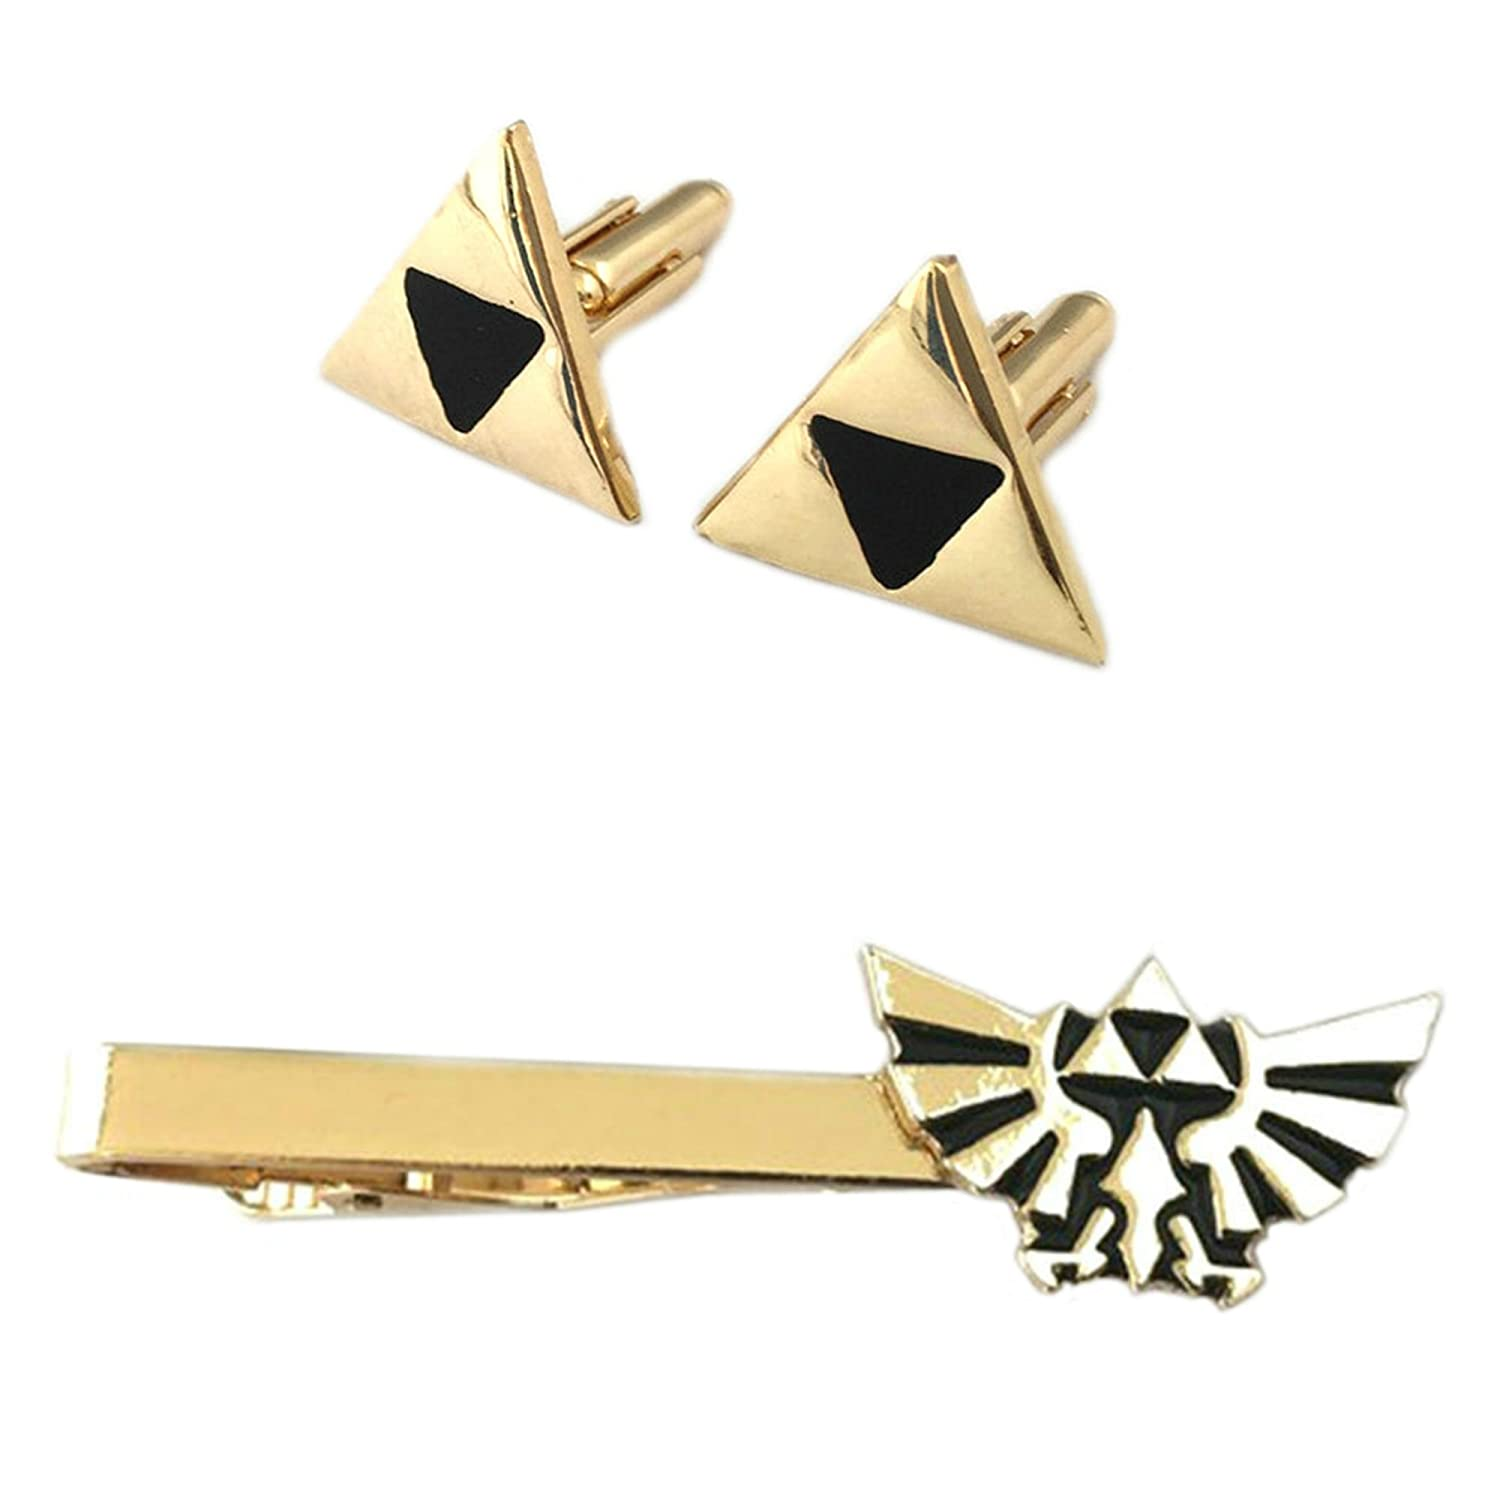 Outlander Legend of Zelda Triforce Cufflink & Hyrule Tiebar - New 2018 Superhero Games - Set of 2 Wedding Logo w/Gift Box Outlander Brand